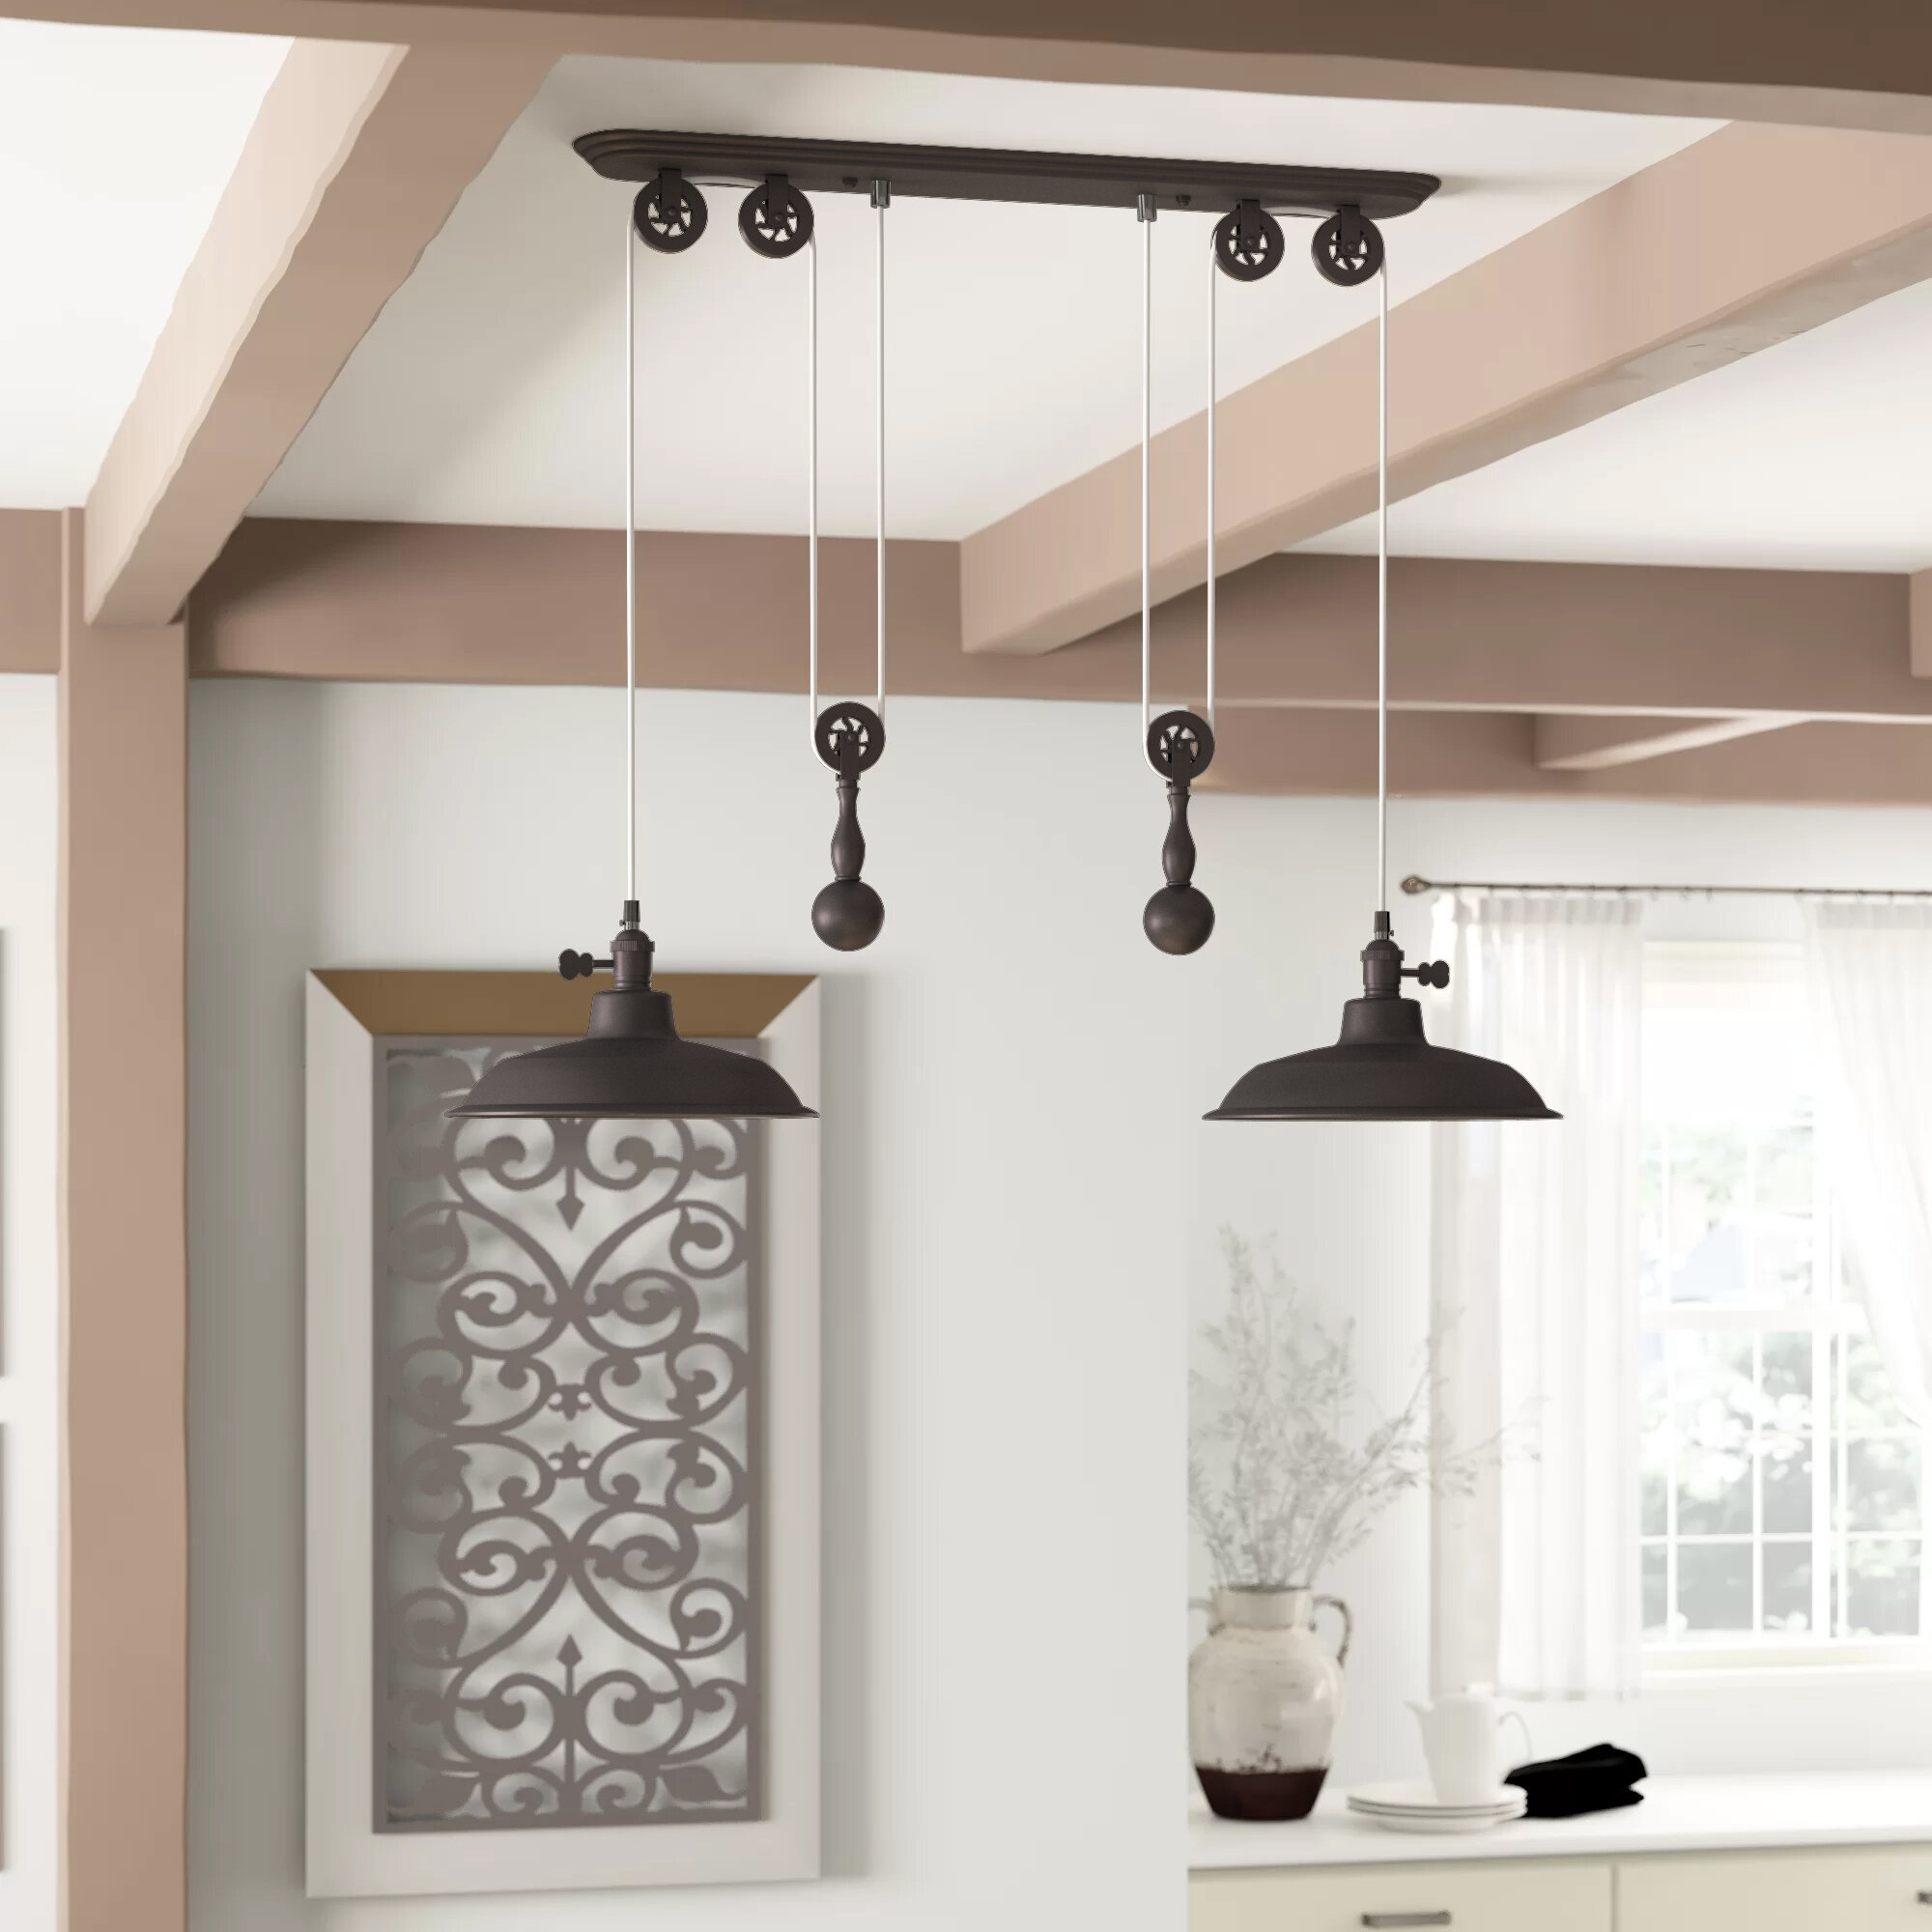 Farmhouse & Rustic Dome Kitchen Island Pendants | Birch Lane Within Ariel 3 Light Kitchen Island Dome Pendants (Image 15 of 30)